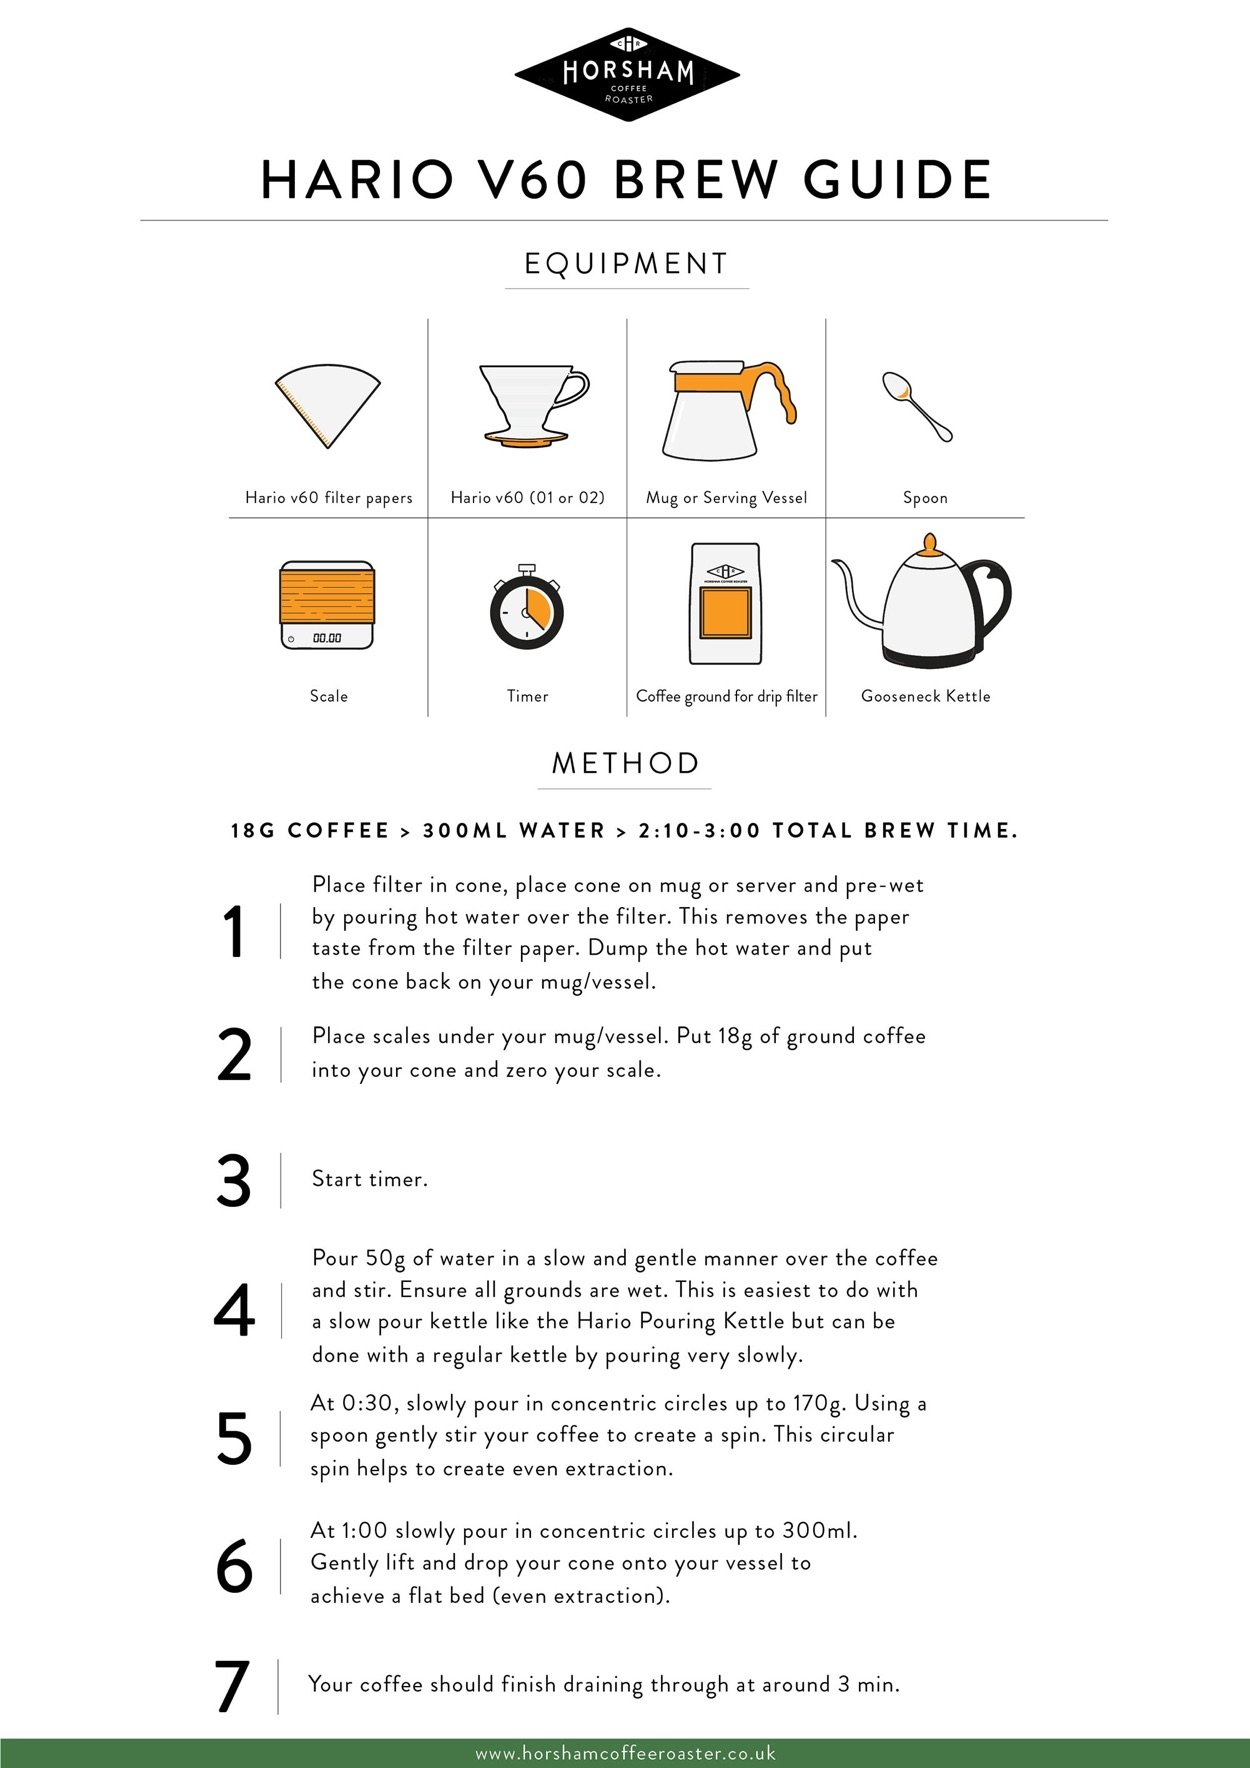 How to make great coffee using a Hario V60